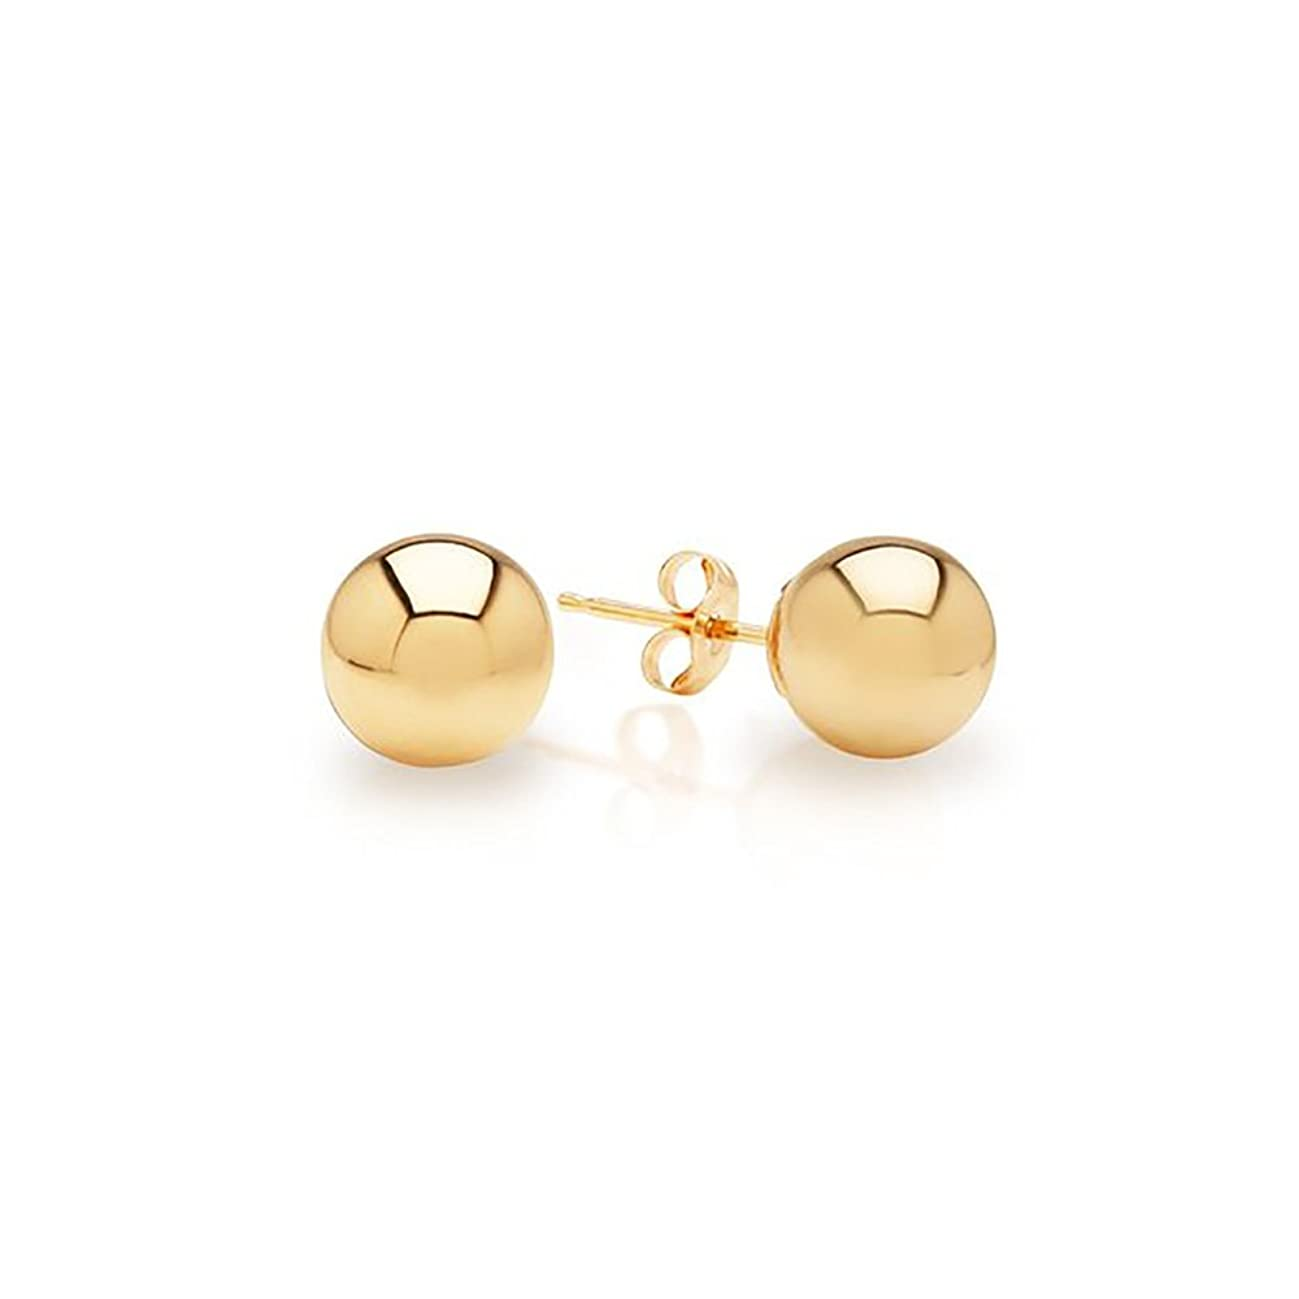 14k Yellow Gold Ball Stud Earrings pushback 3 4 5 6 7 8 10 12 14 MM